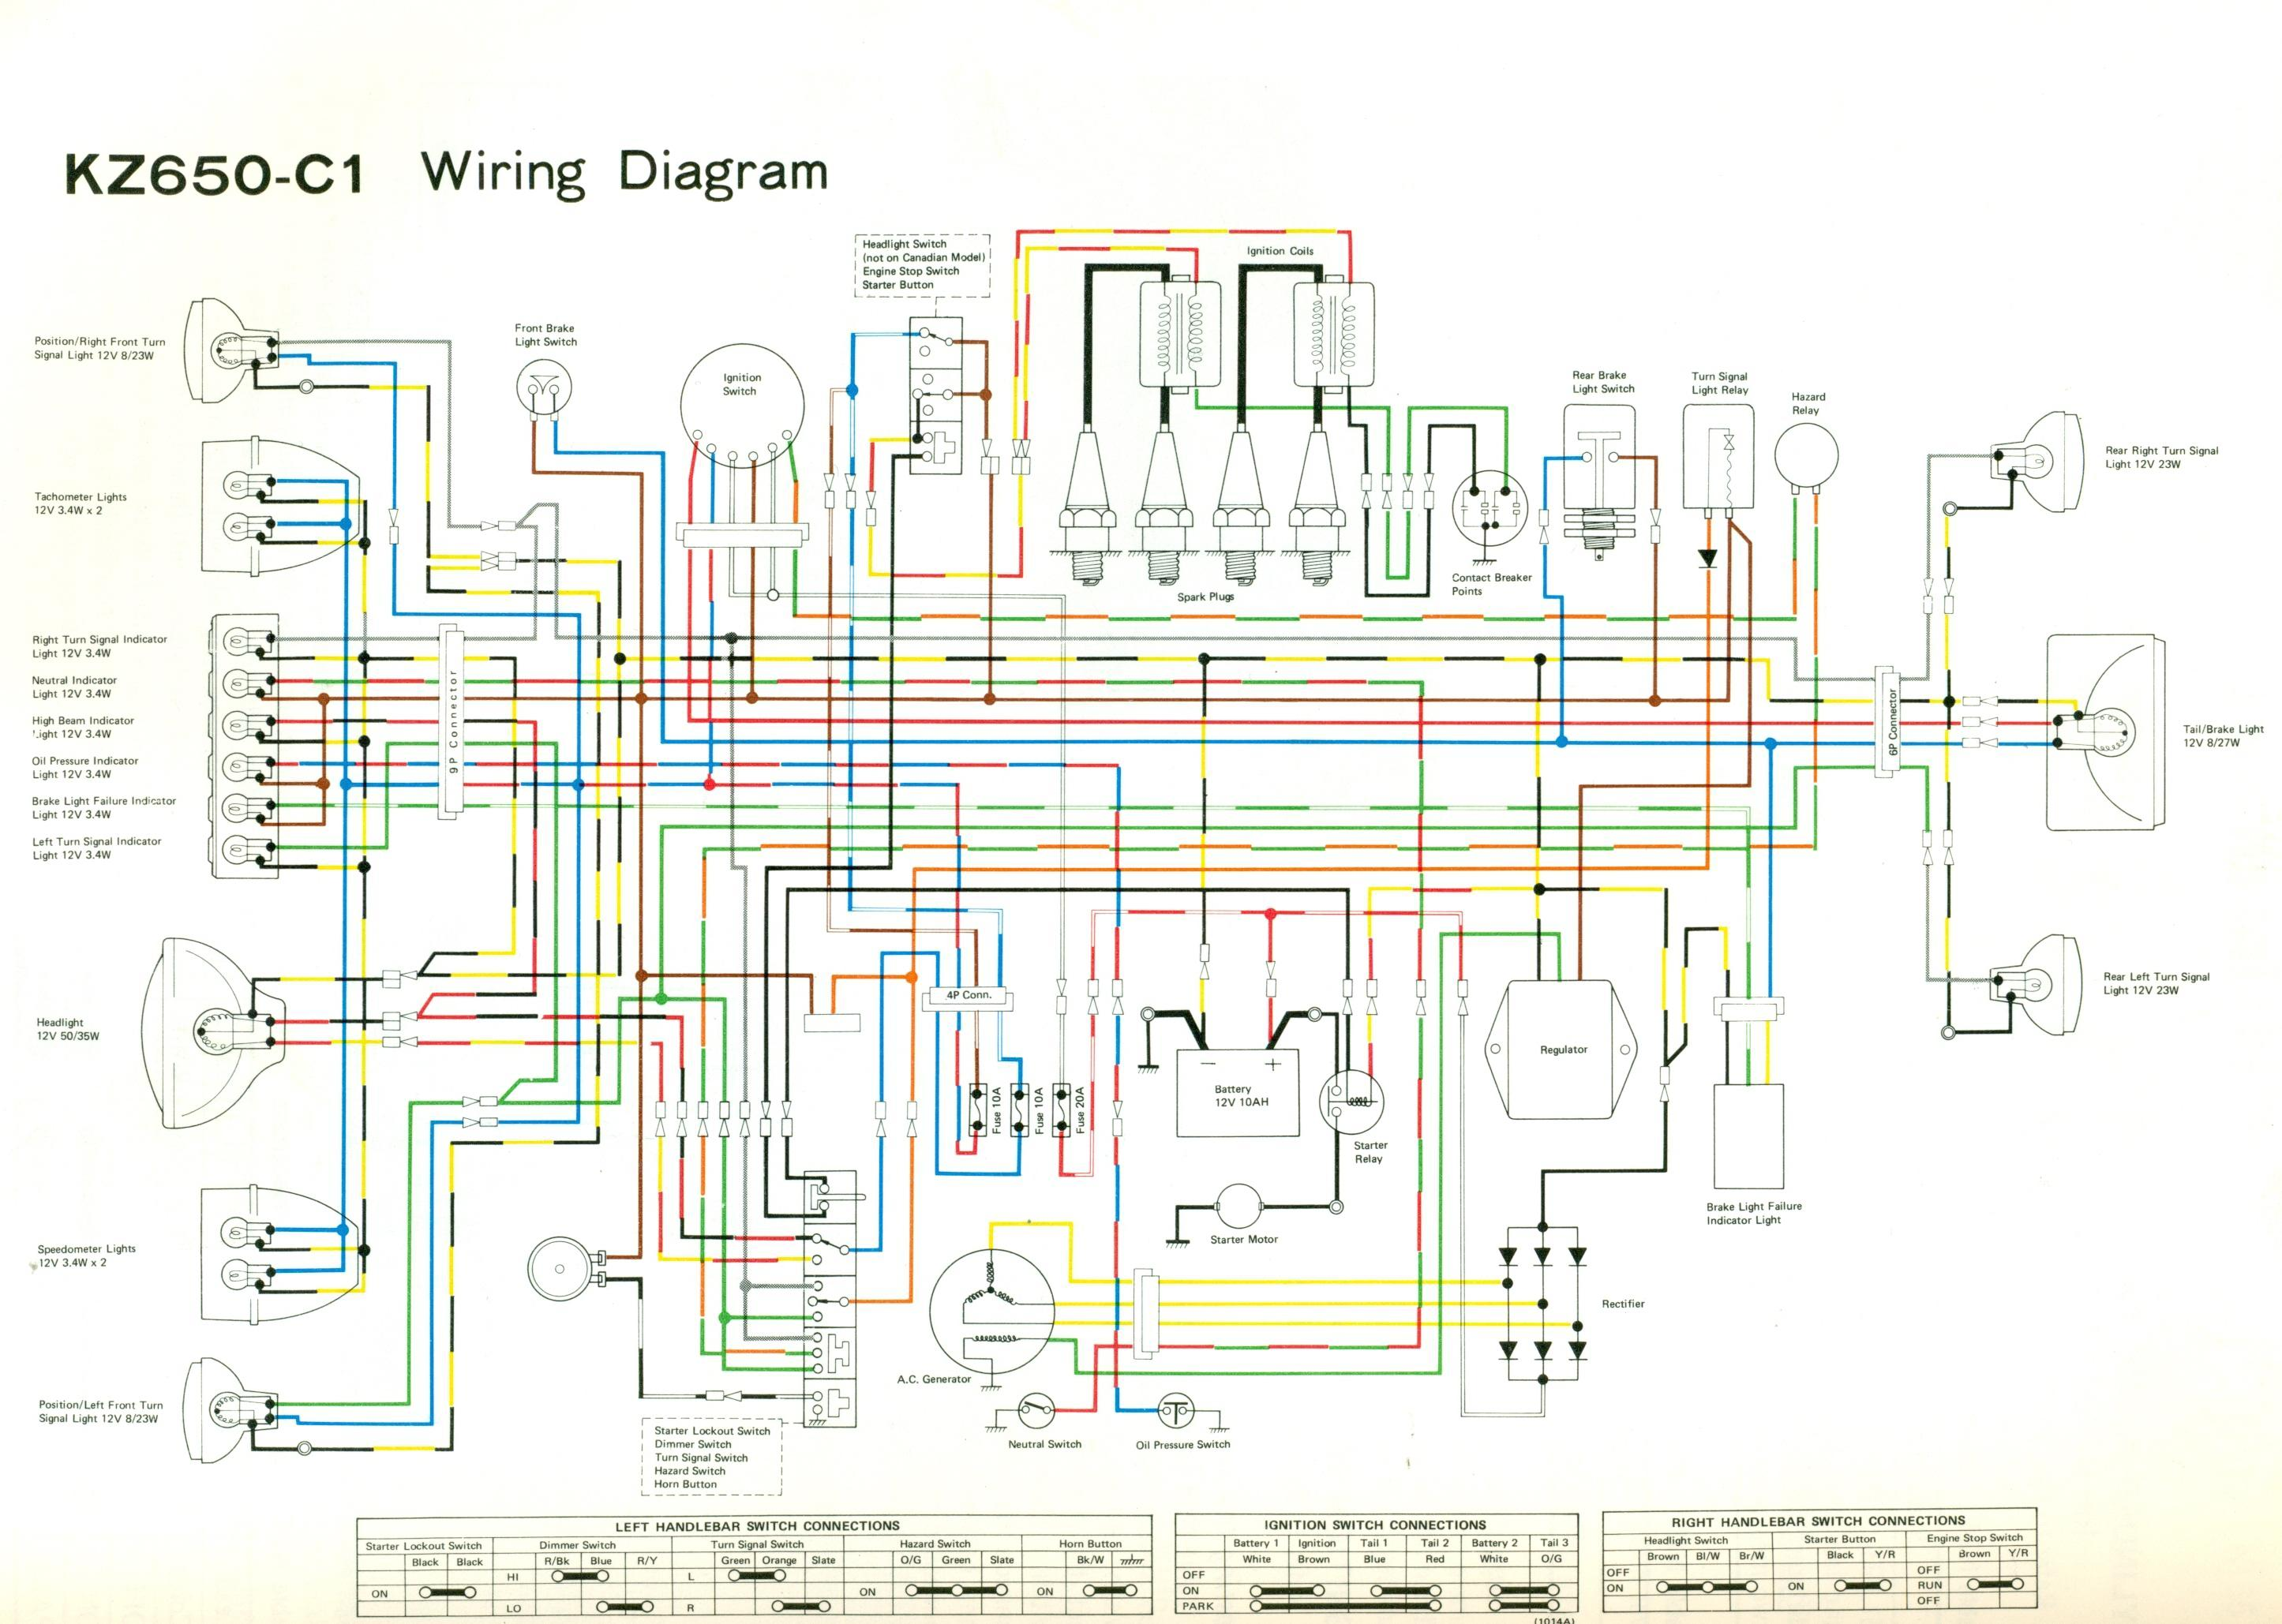 KZ650 C wiring diagrams 2006 2007 2008 ninja 650r wiring diagram at readyjetset.co